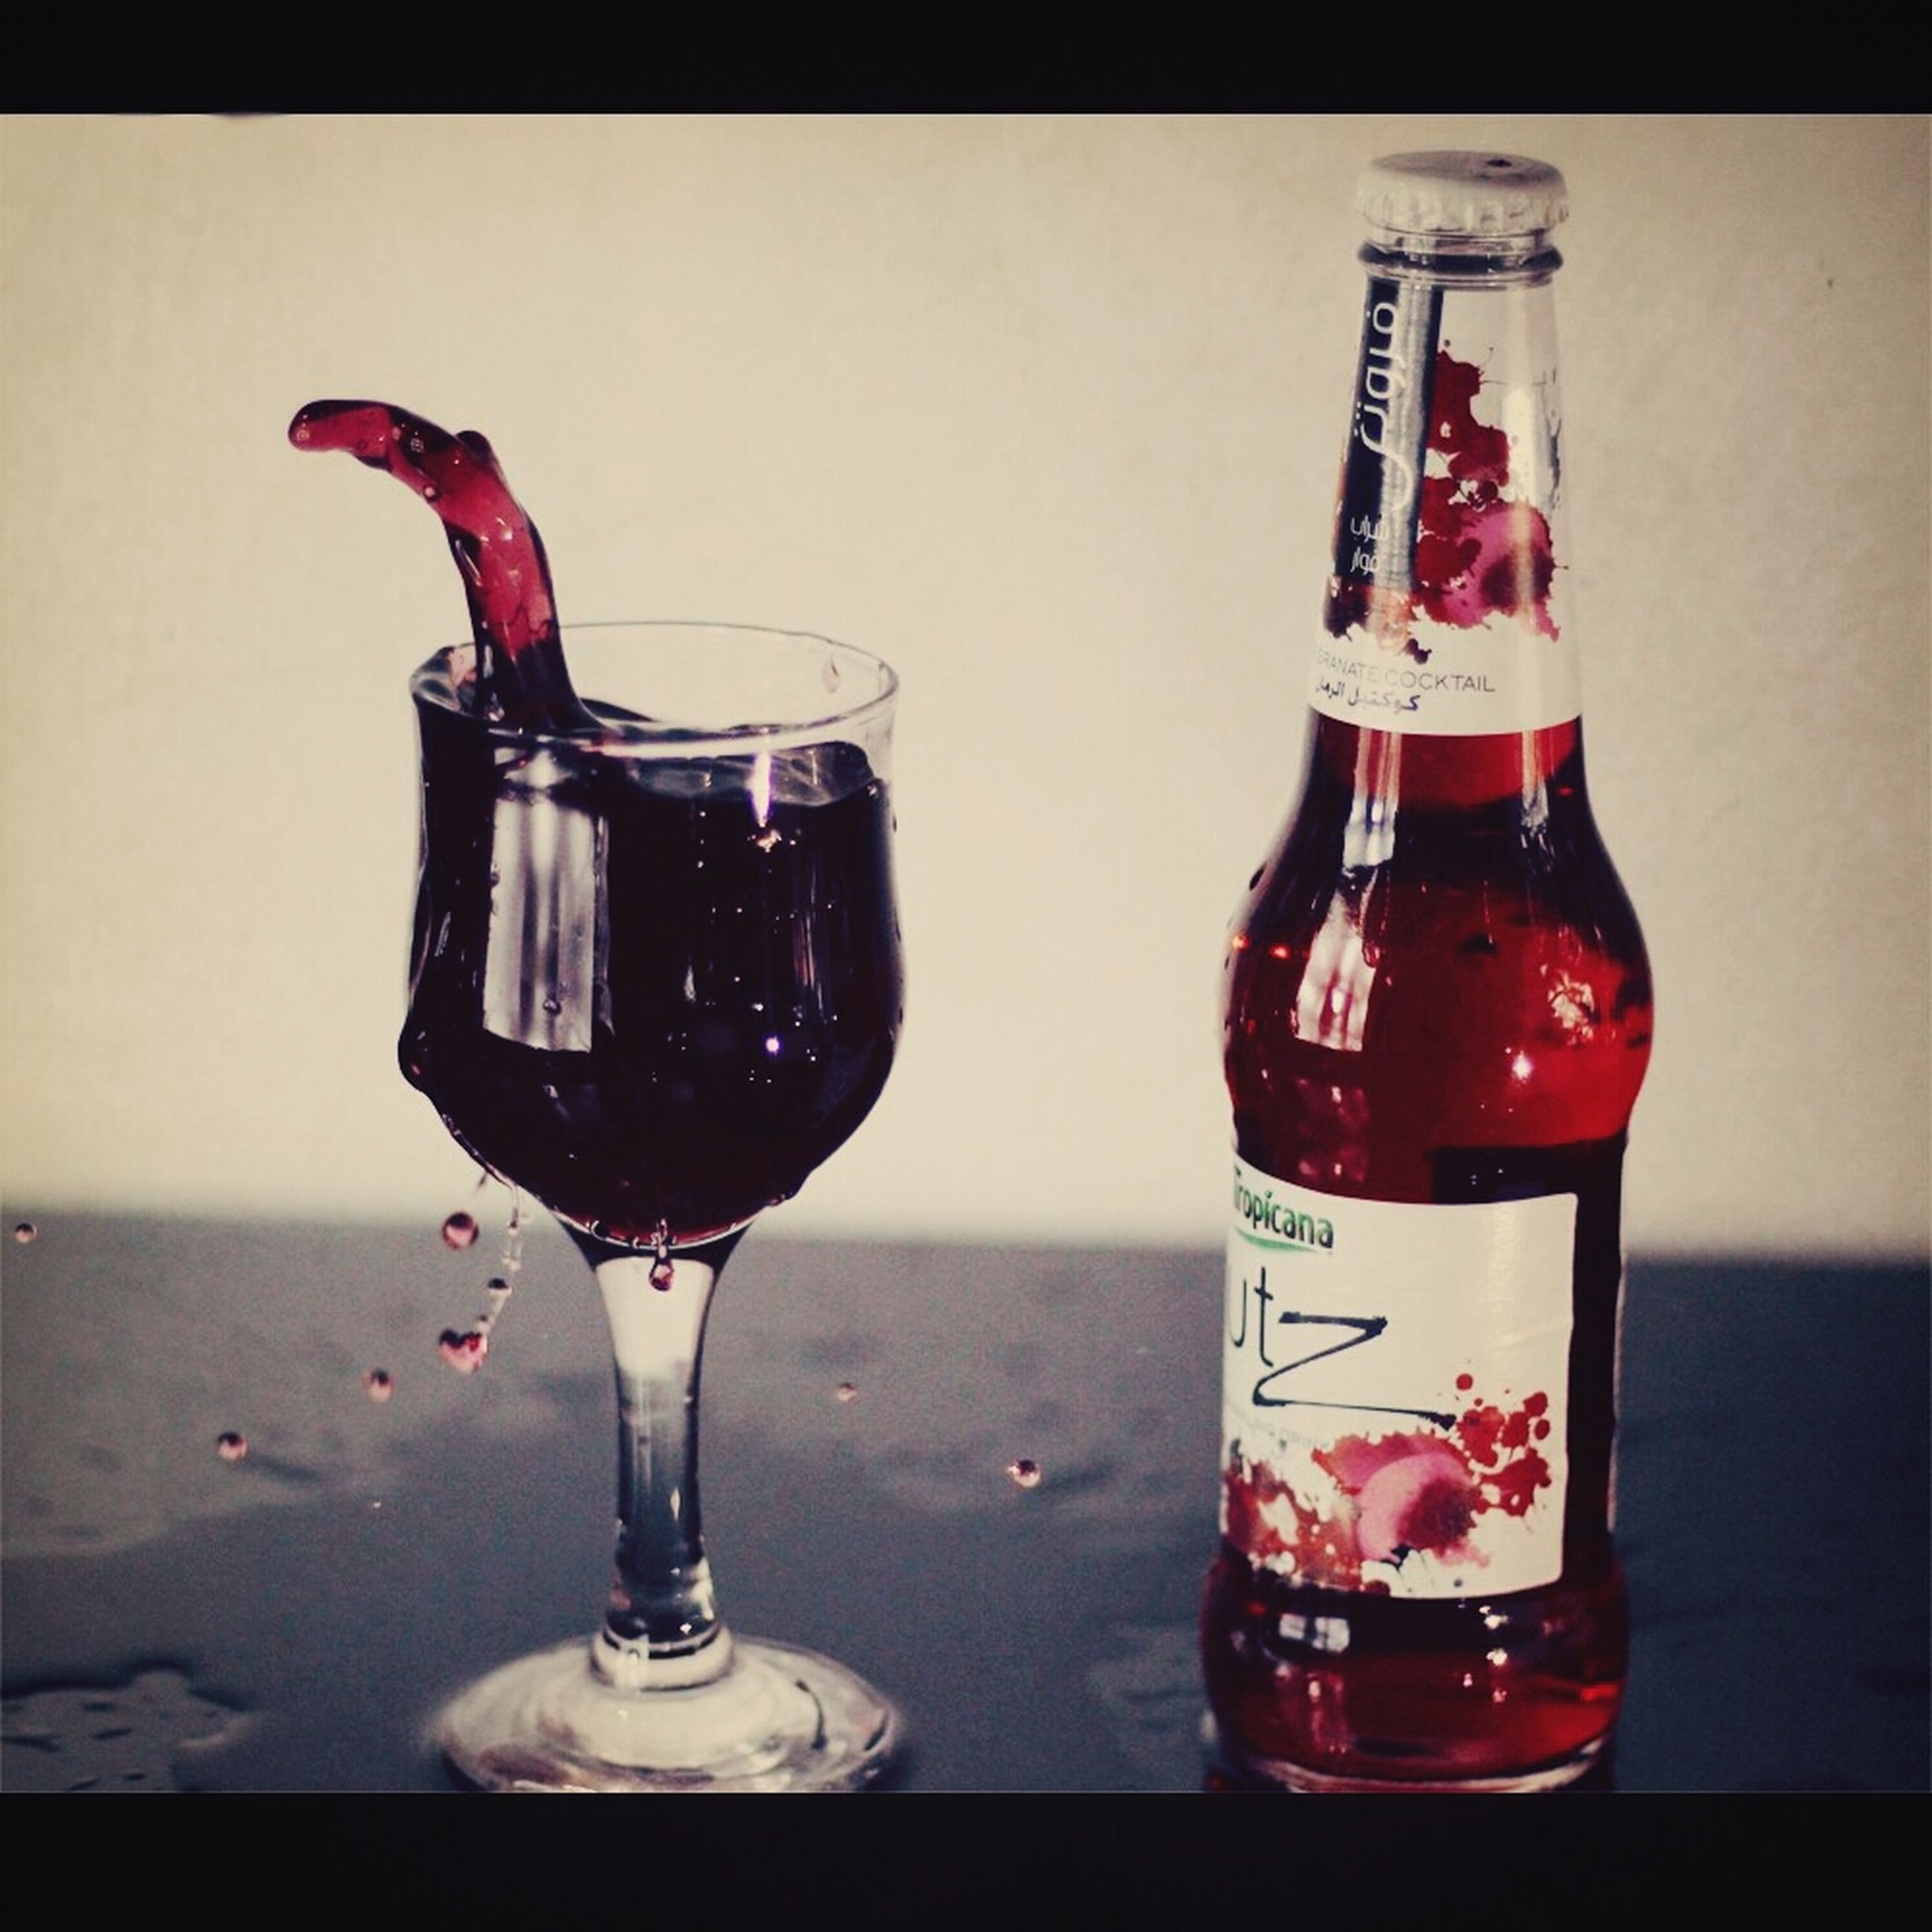 food and drink, drink, drinking glass, indoors, refreshment, table, still life, freshness, glass - material, glass, close-up, alcohol, transparent, bottle, drinking straw, red, wineglass, cocktail, no people, juice